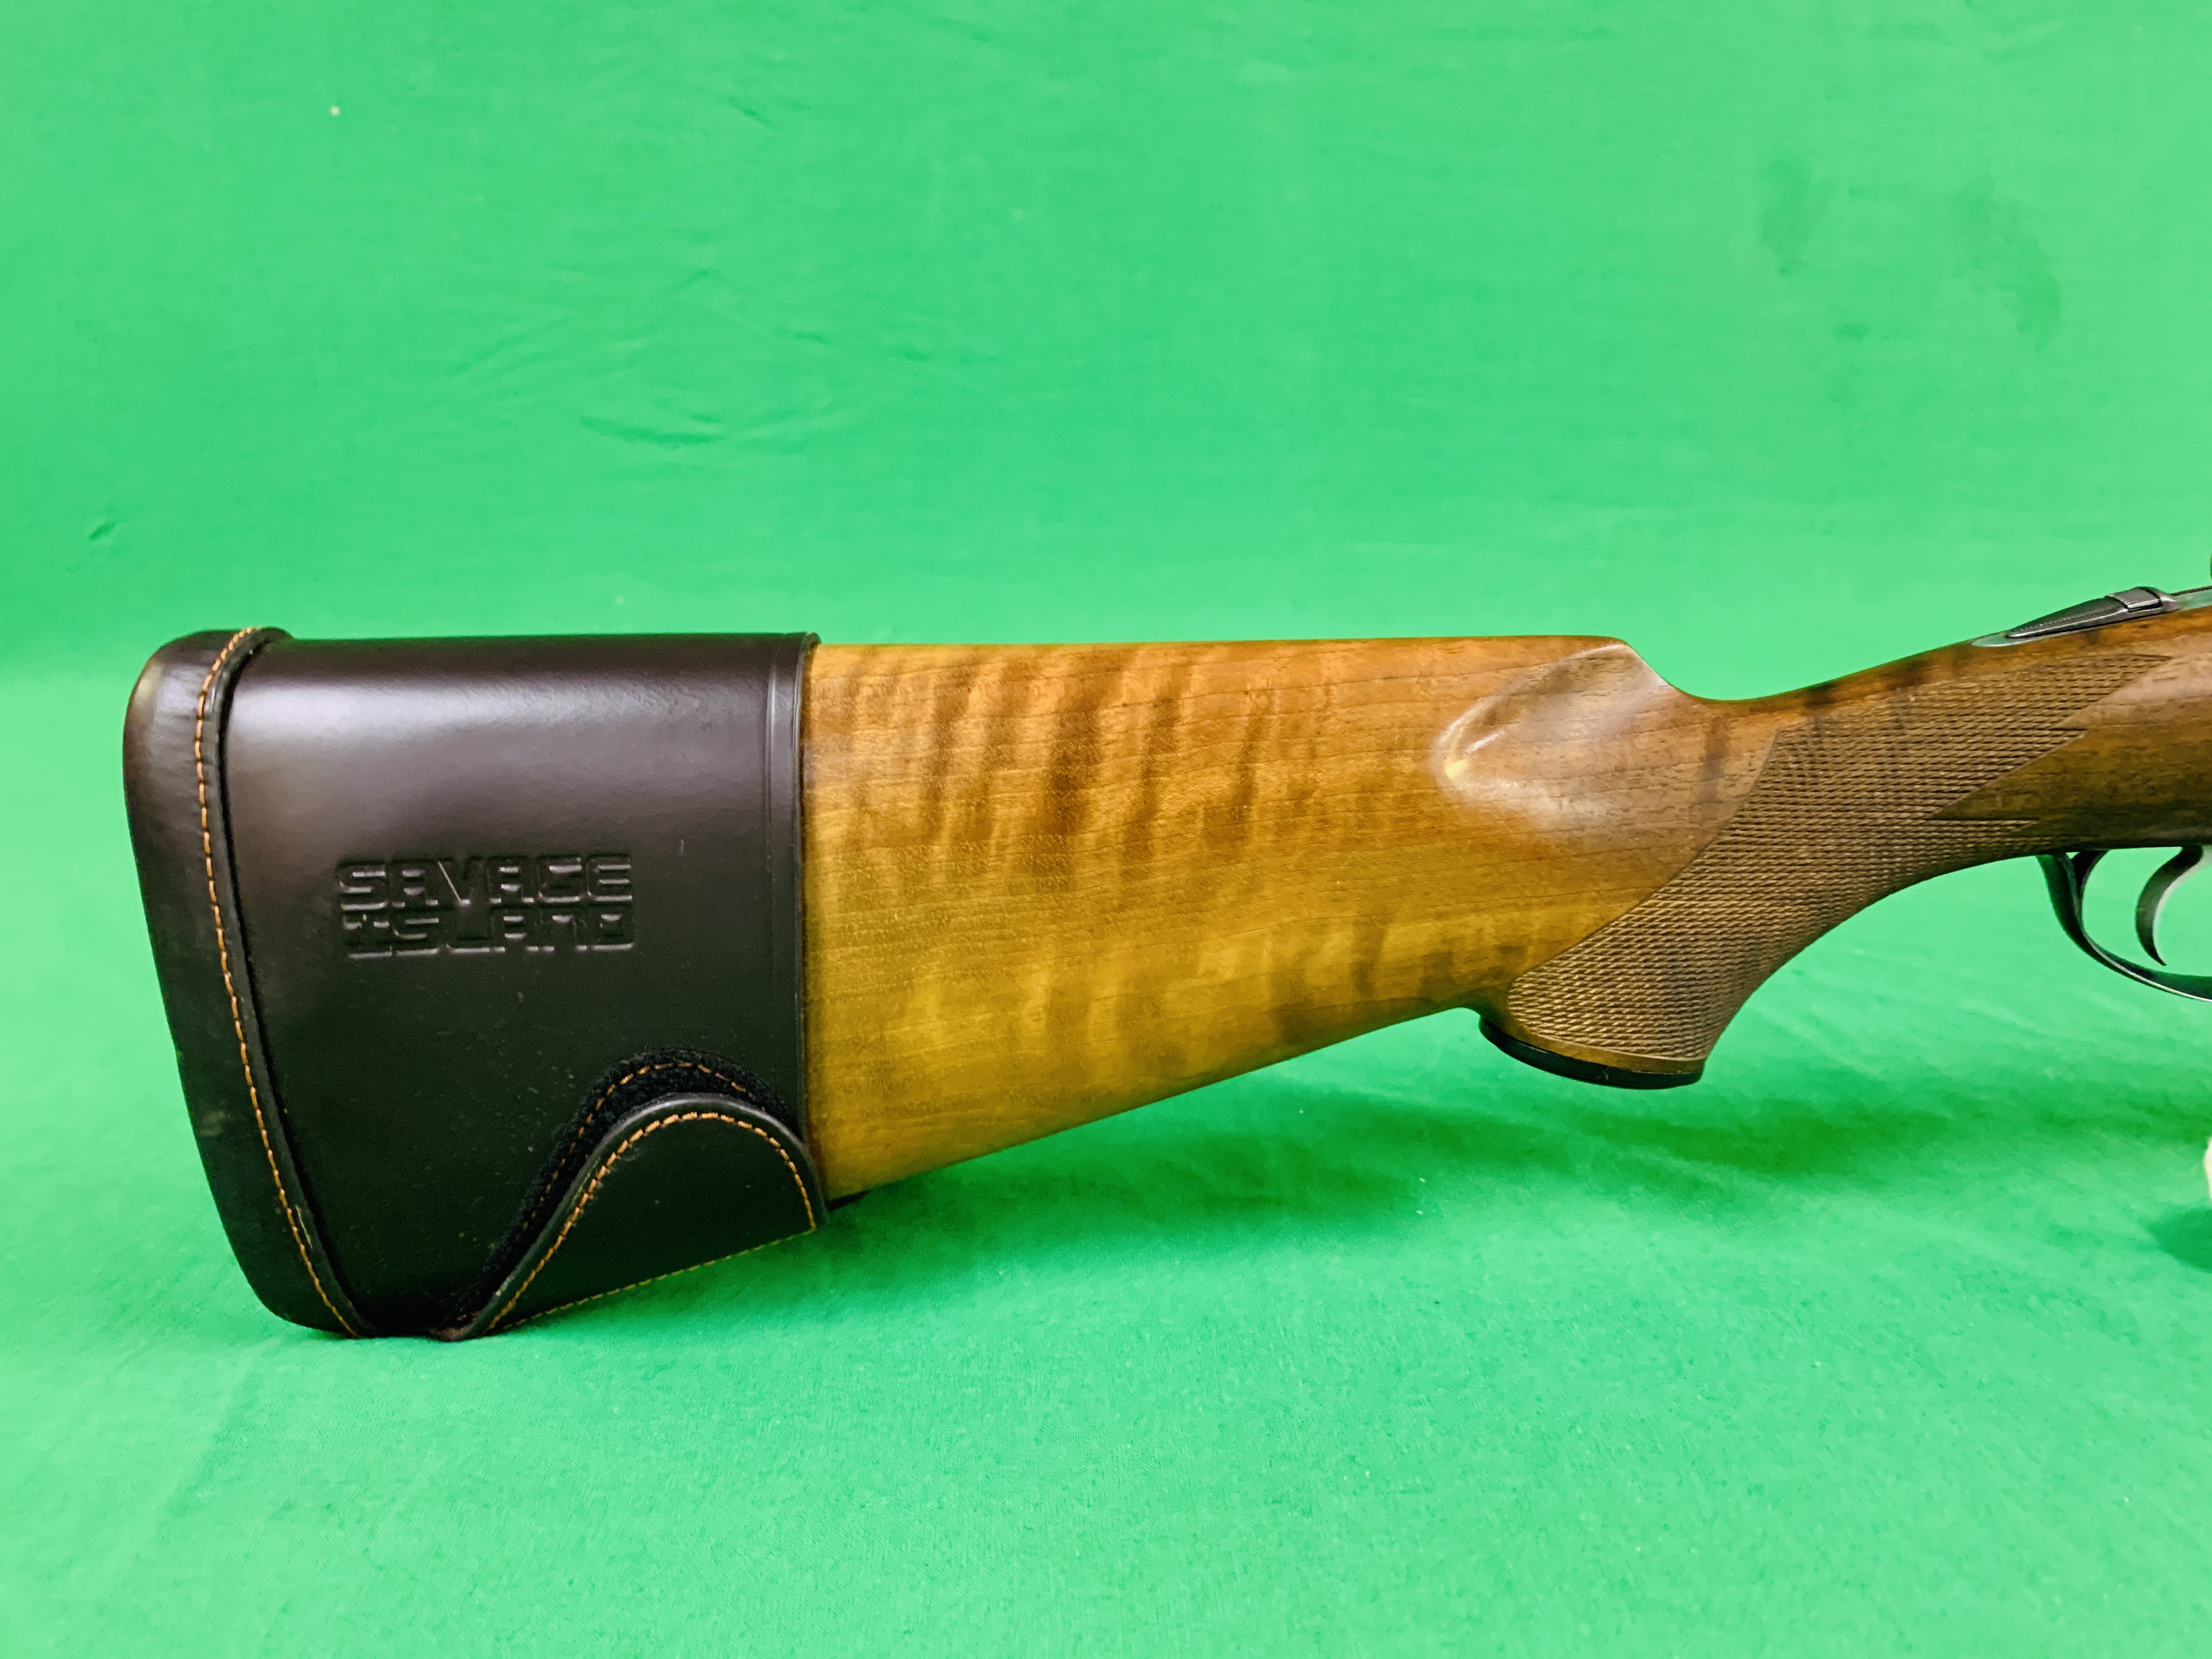 12 BORE BERETTA OVER AND UNDER SHOTGUN # B17388B WITH GUN SLEEVE - (ALL GUNS TO BE INSPECTED AND - Image 3 of 9